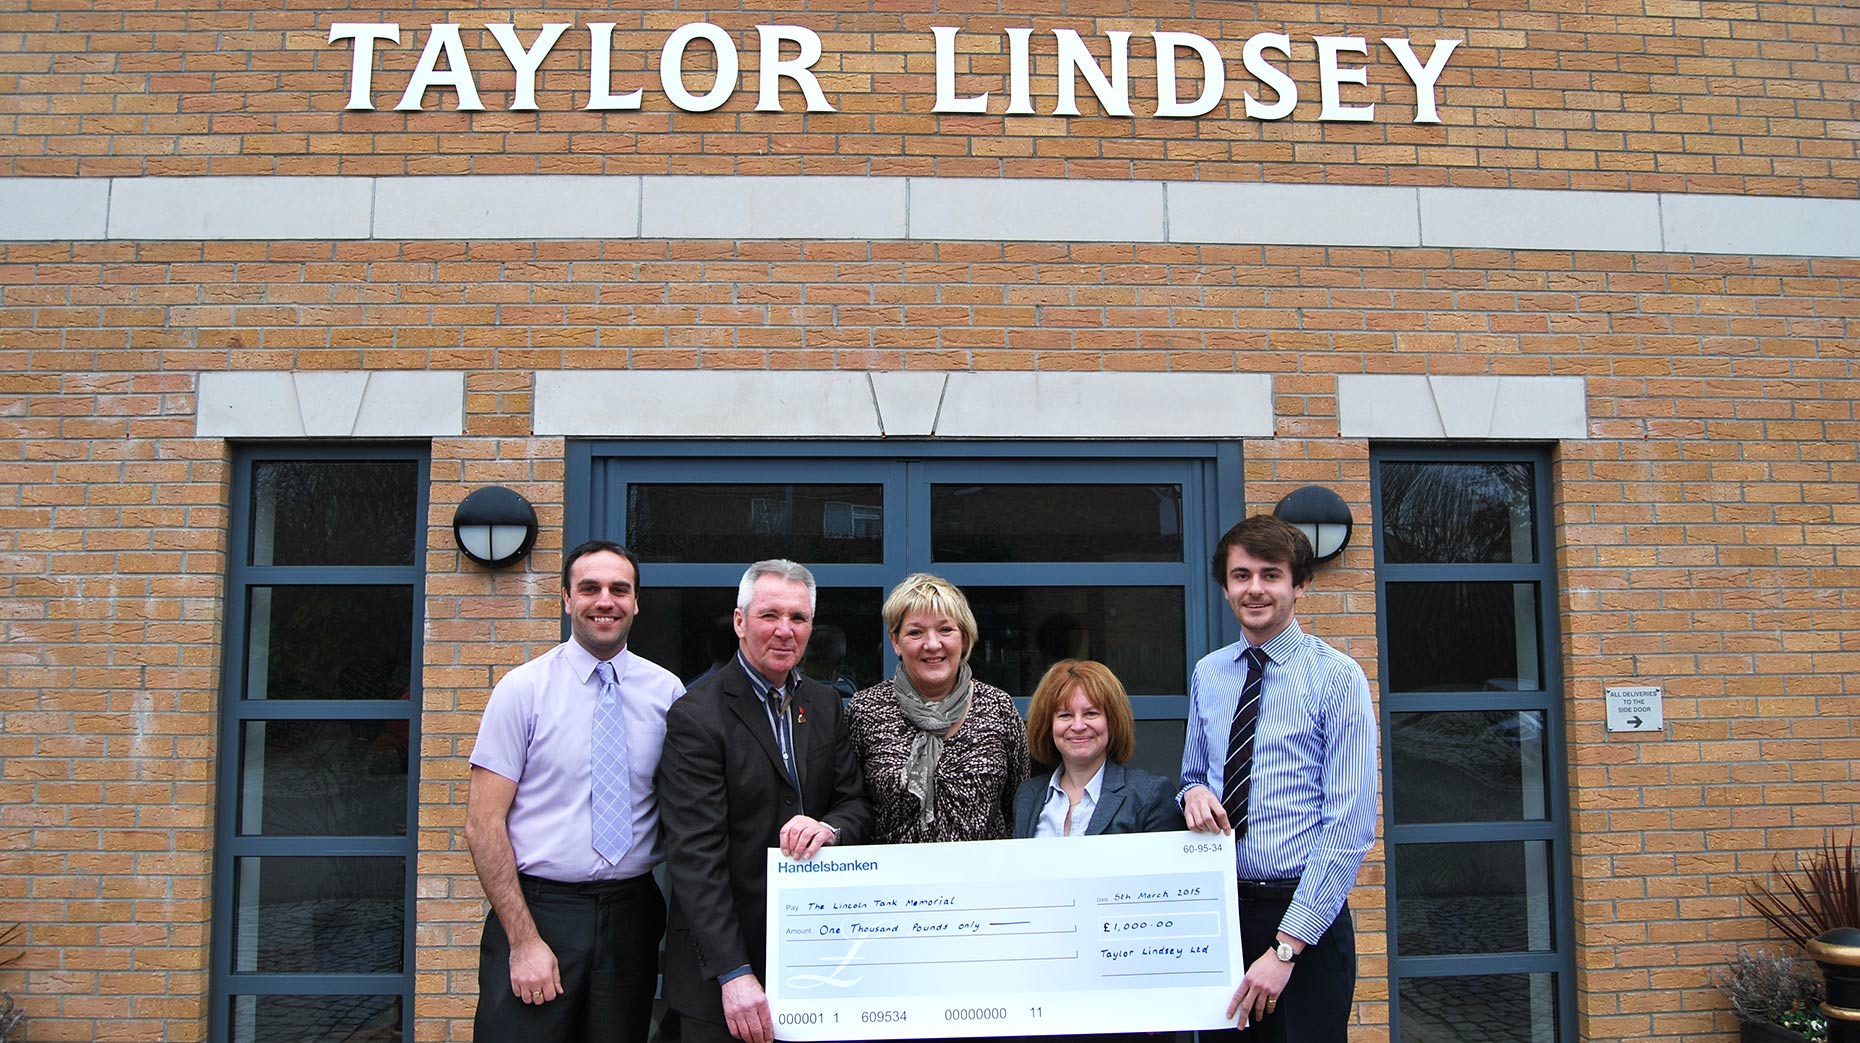 The Taylor Lindsey team donated £1,000 to the fund this week.